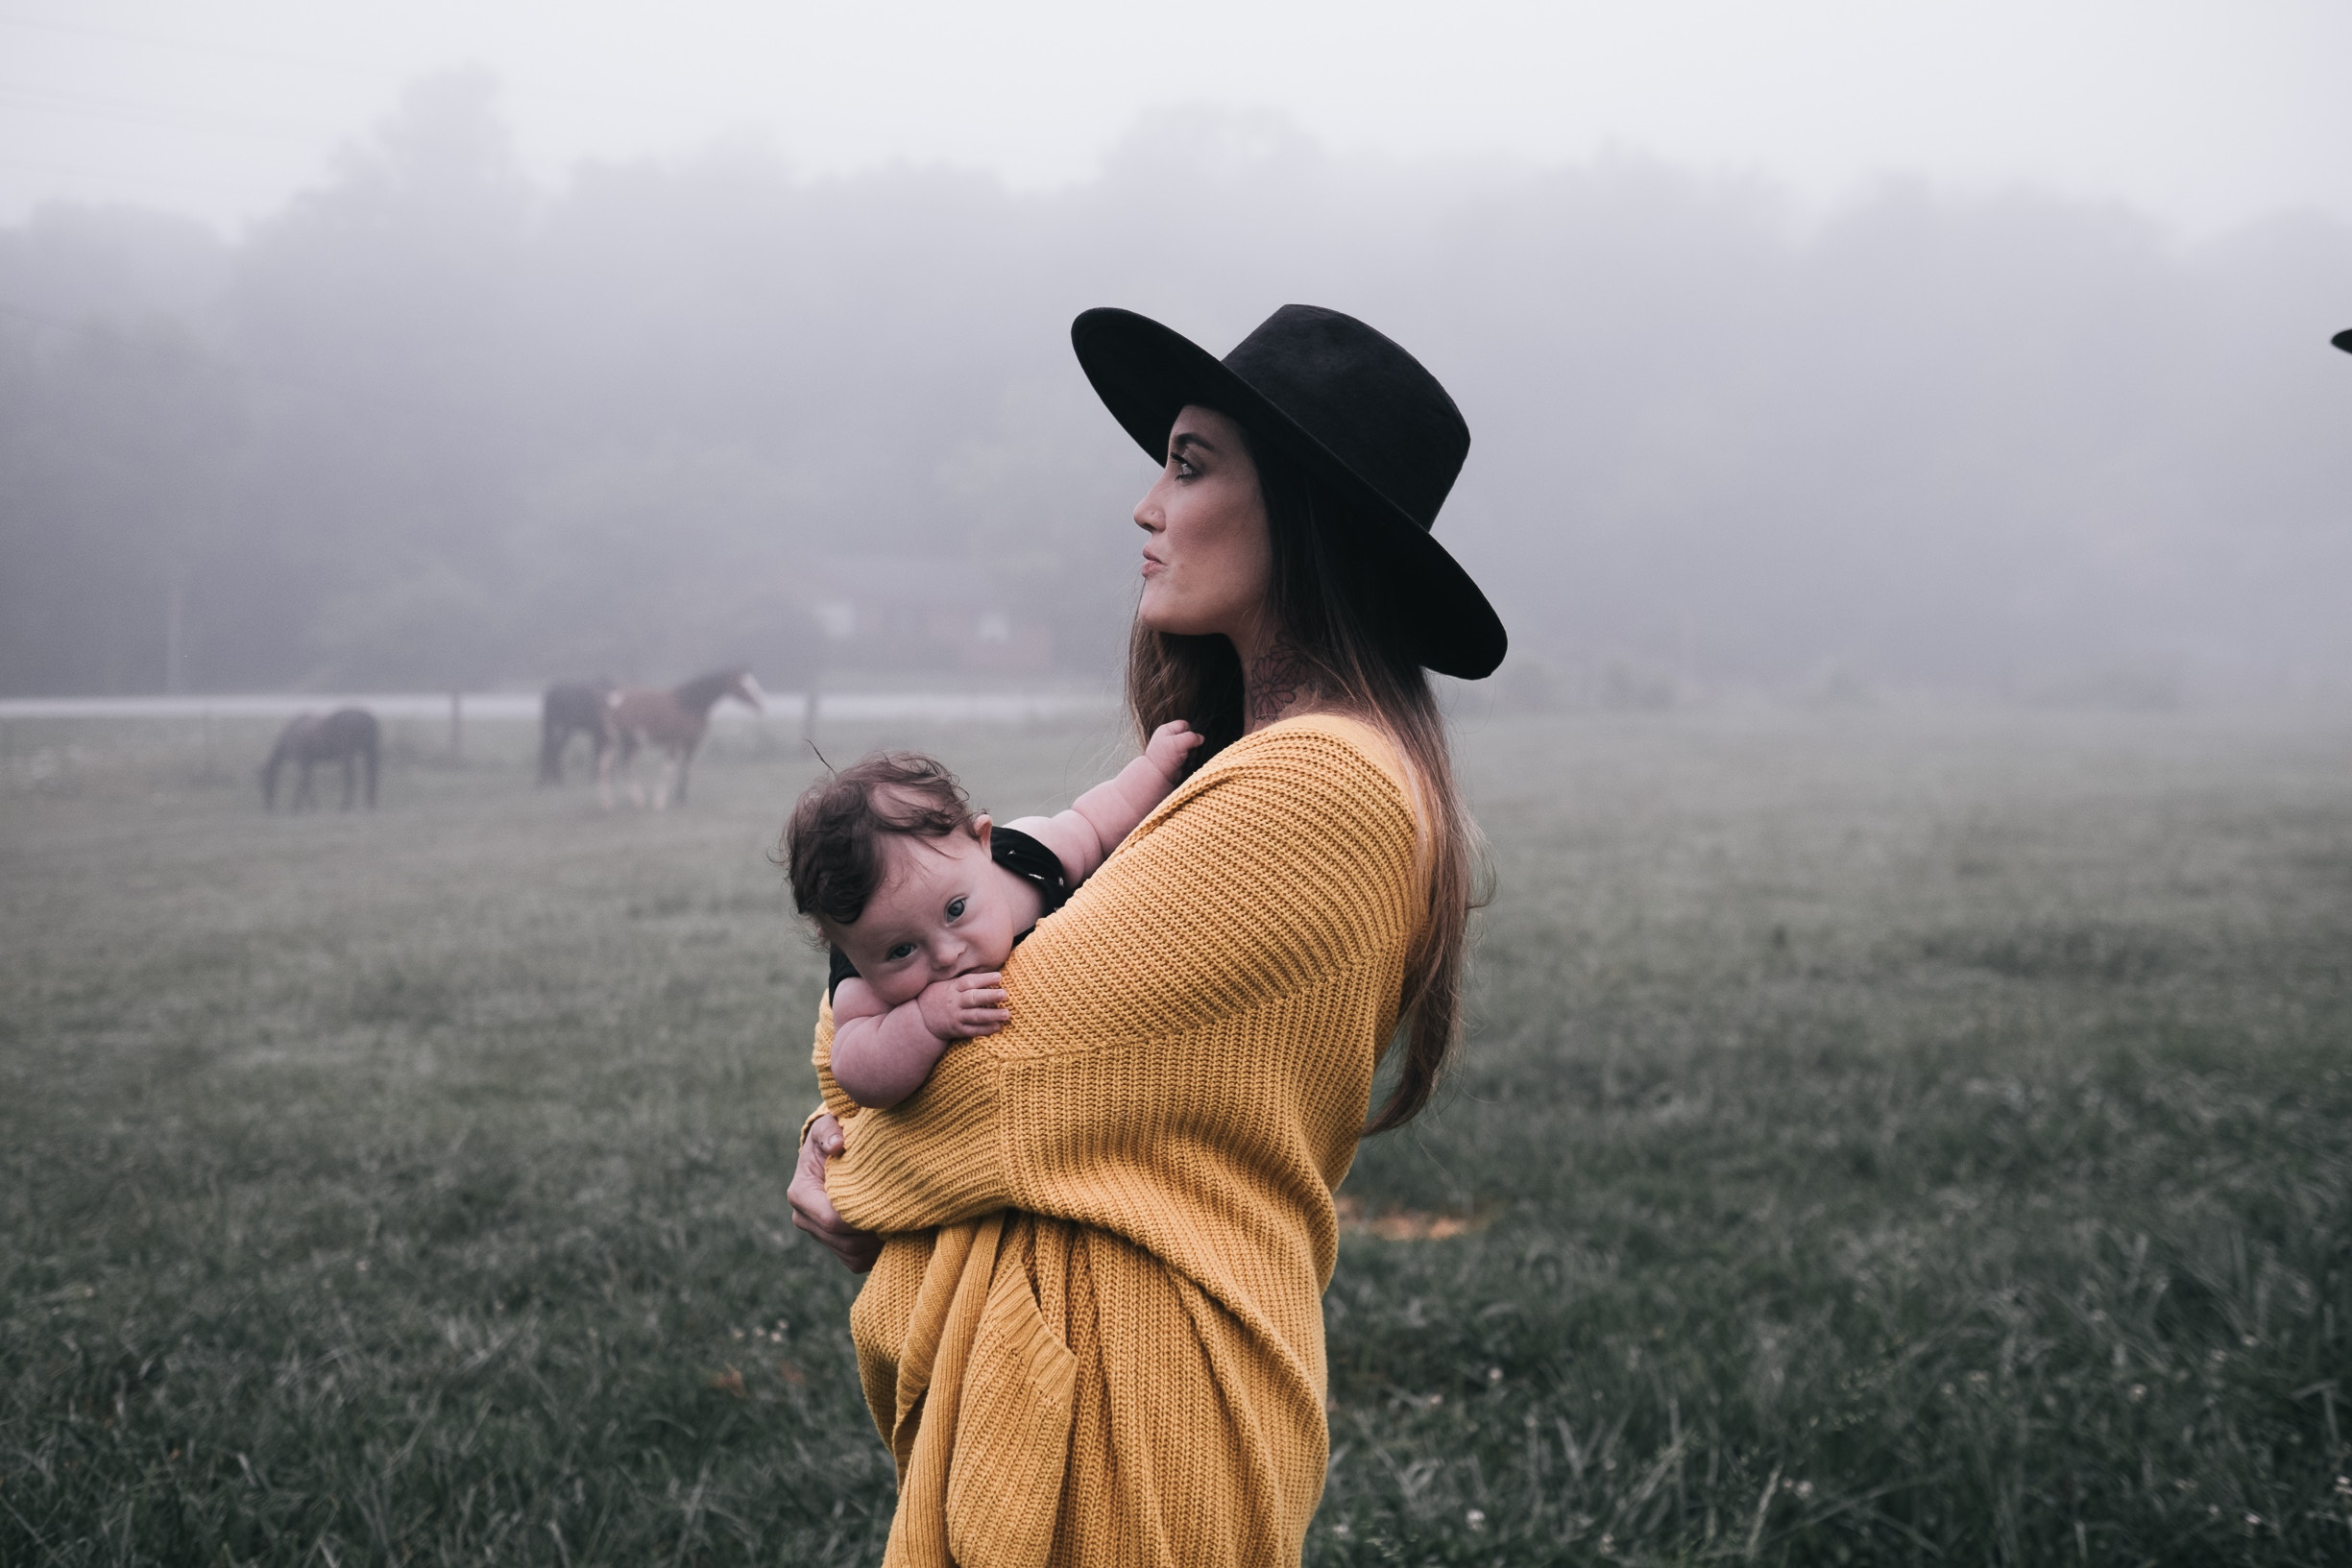 A Story About Breastfeeding